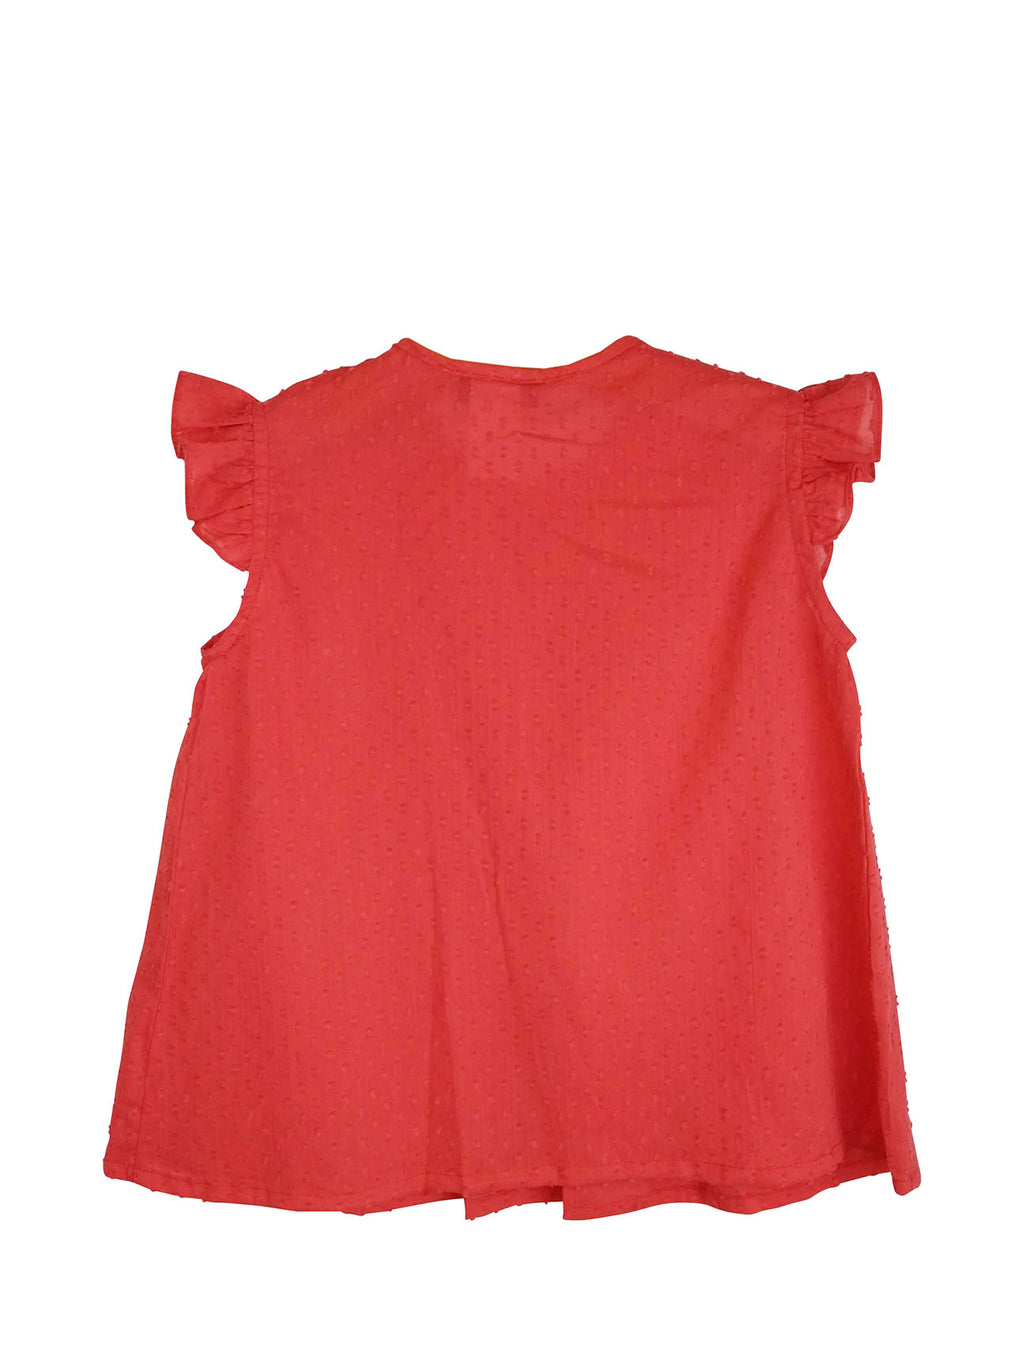 Red Plumeti Pleated Girl Blouse - Little Threads Inc. Children's Clothing